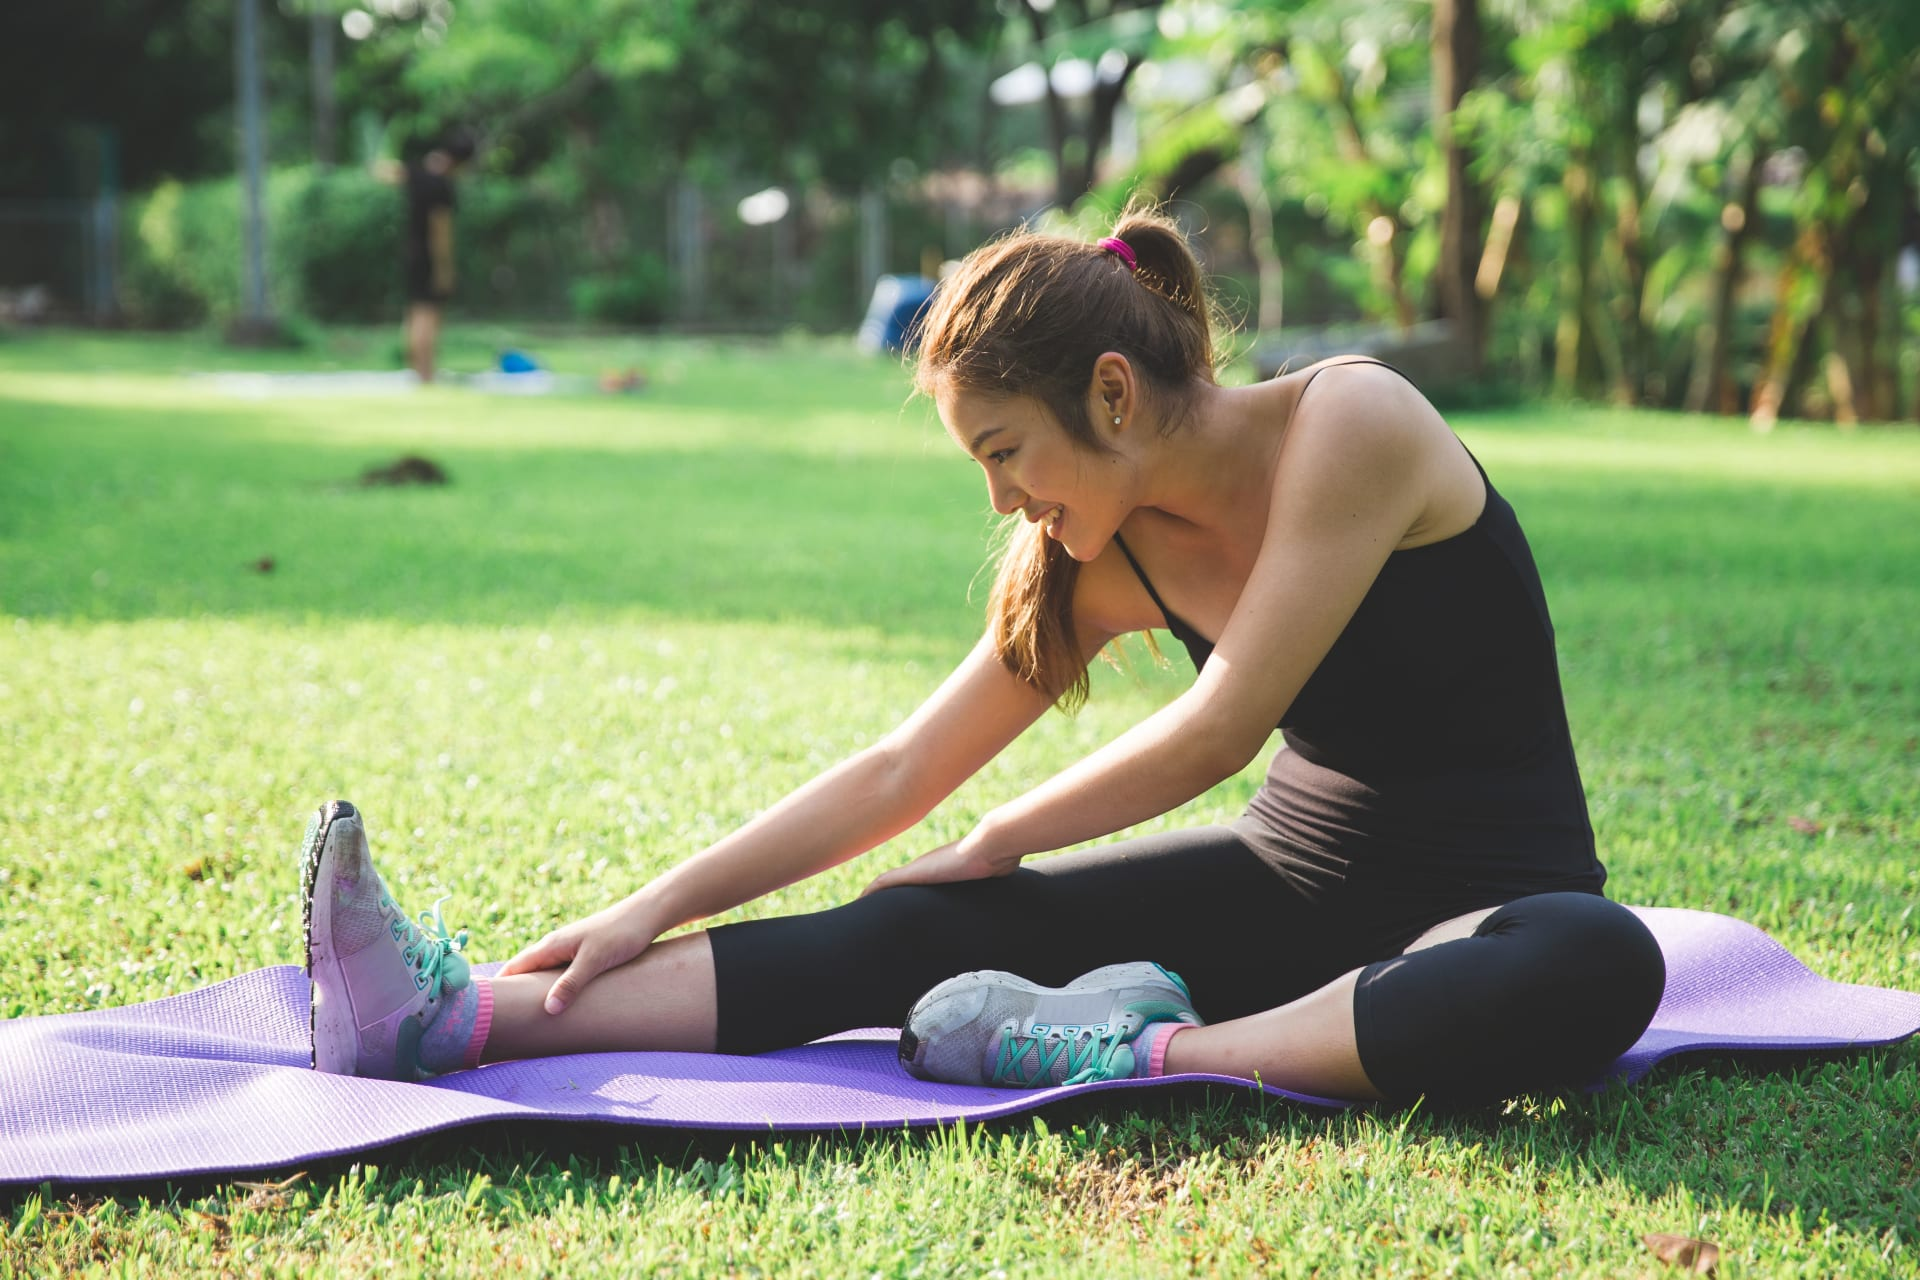 Girl stretching in nature on a yoga mat